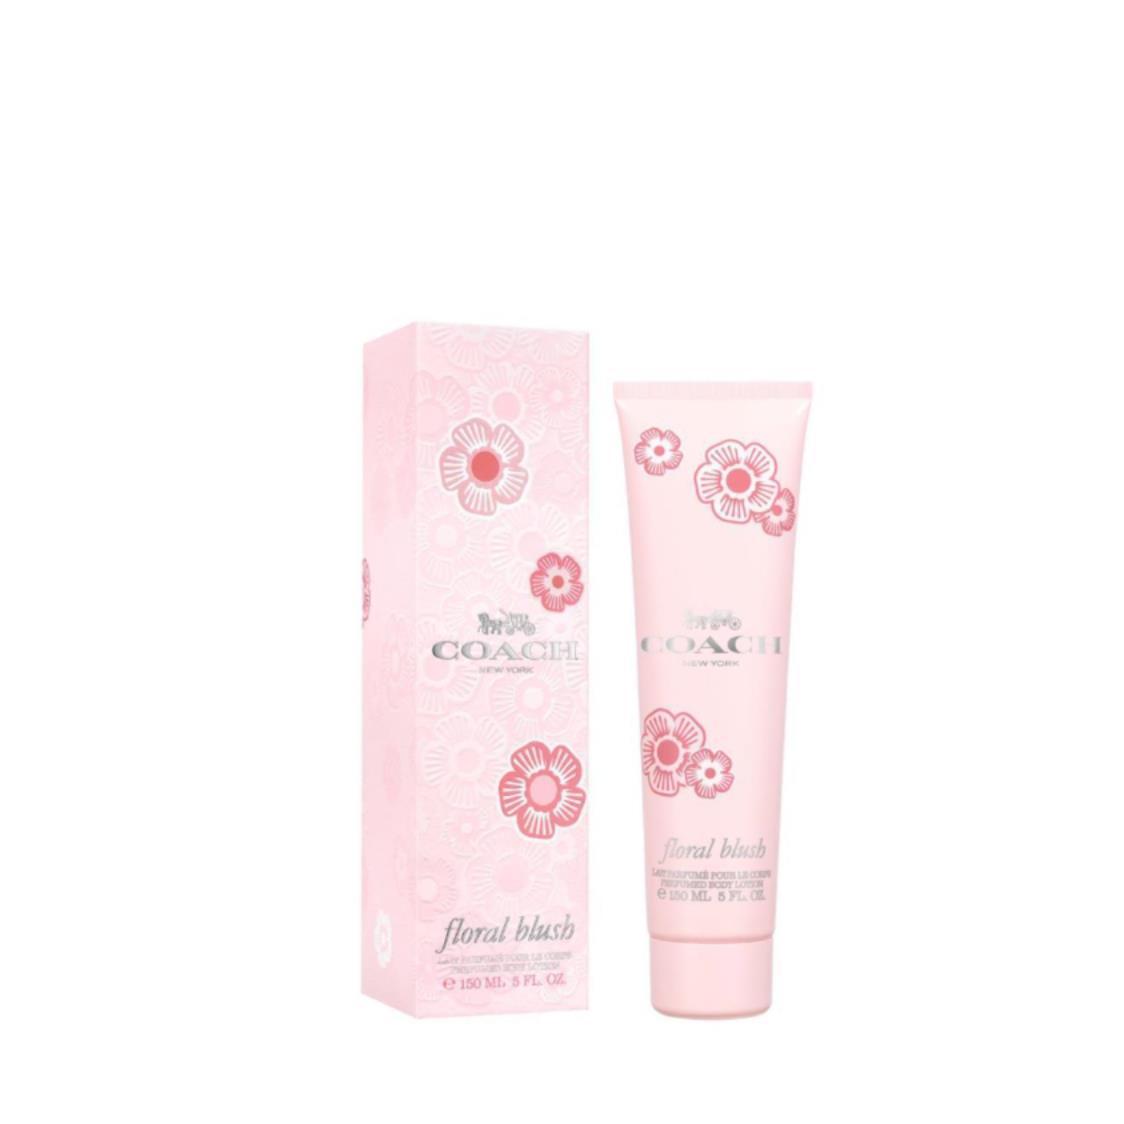 Floral Blush Body Lotion 150ml